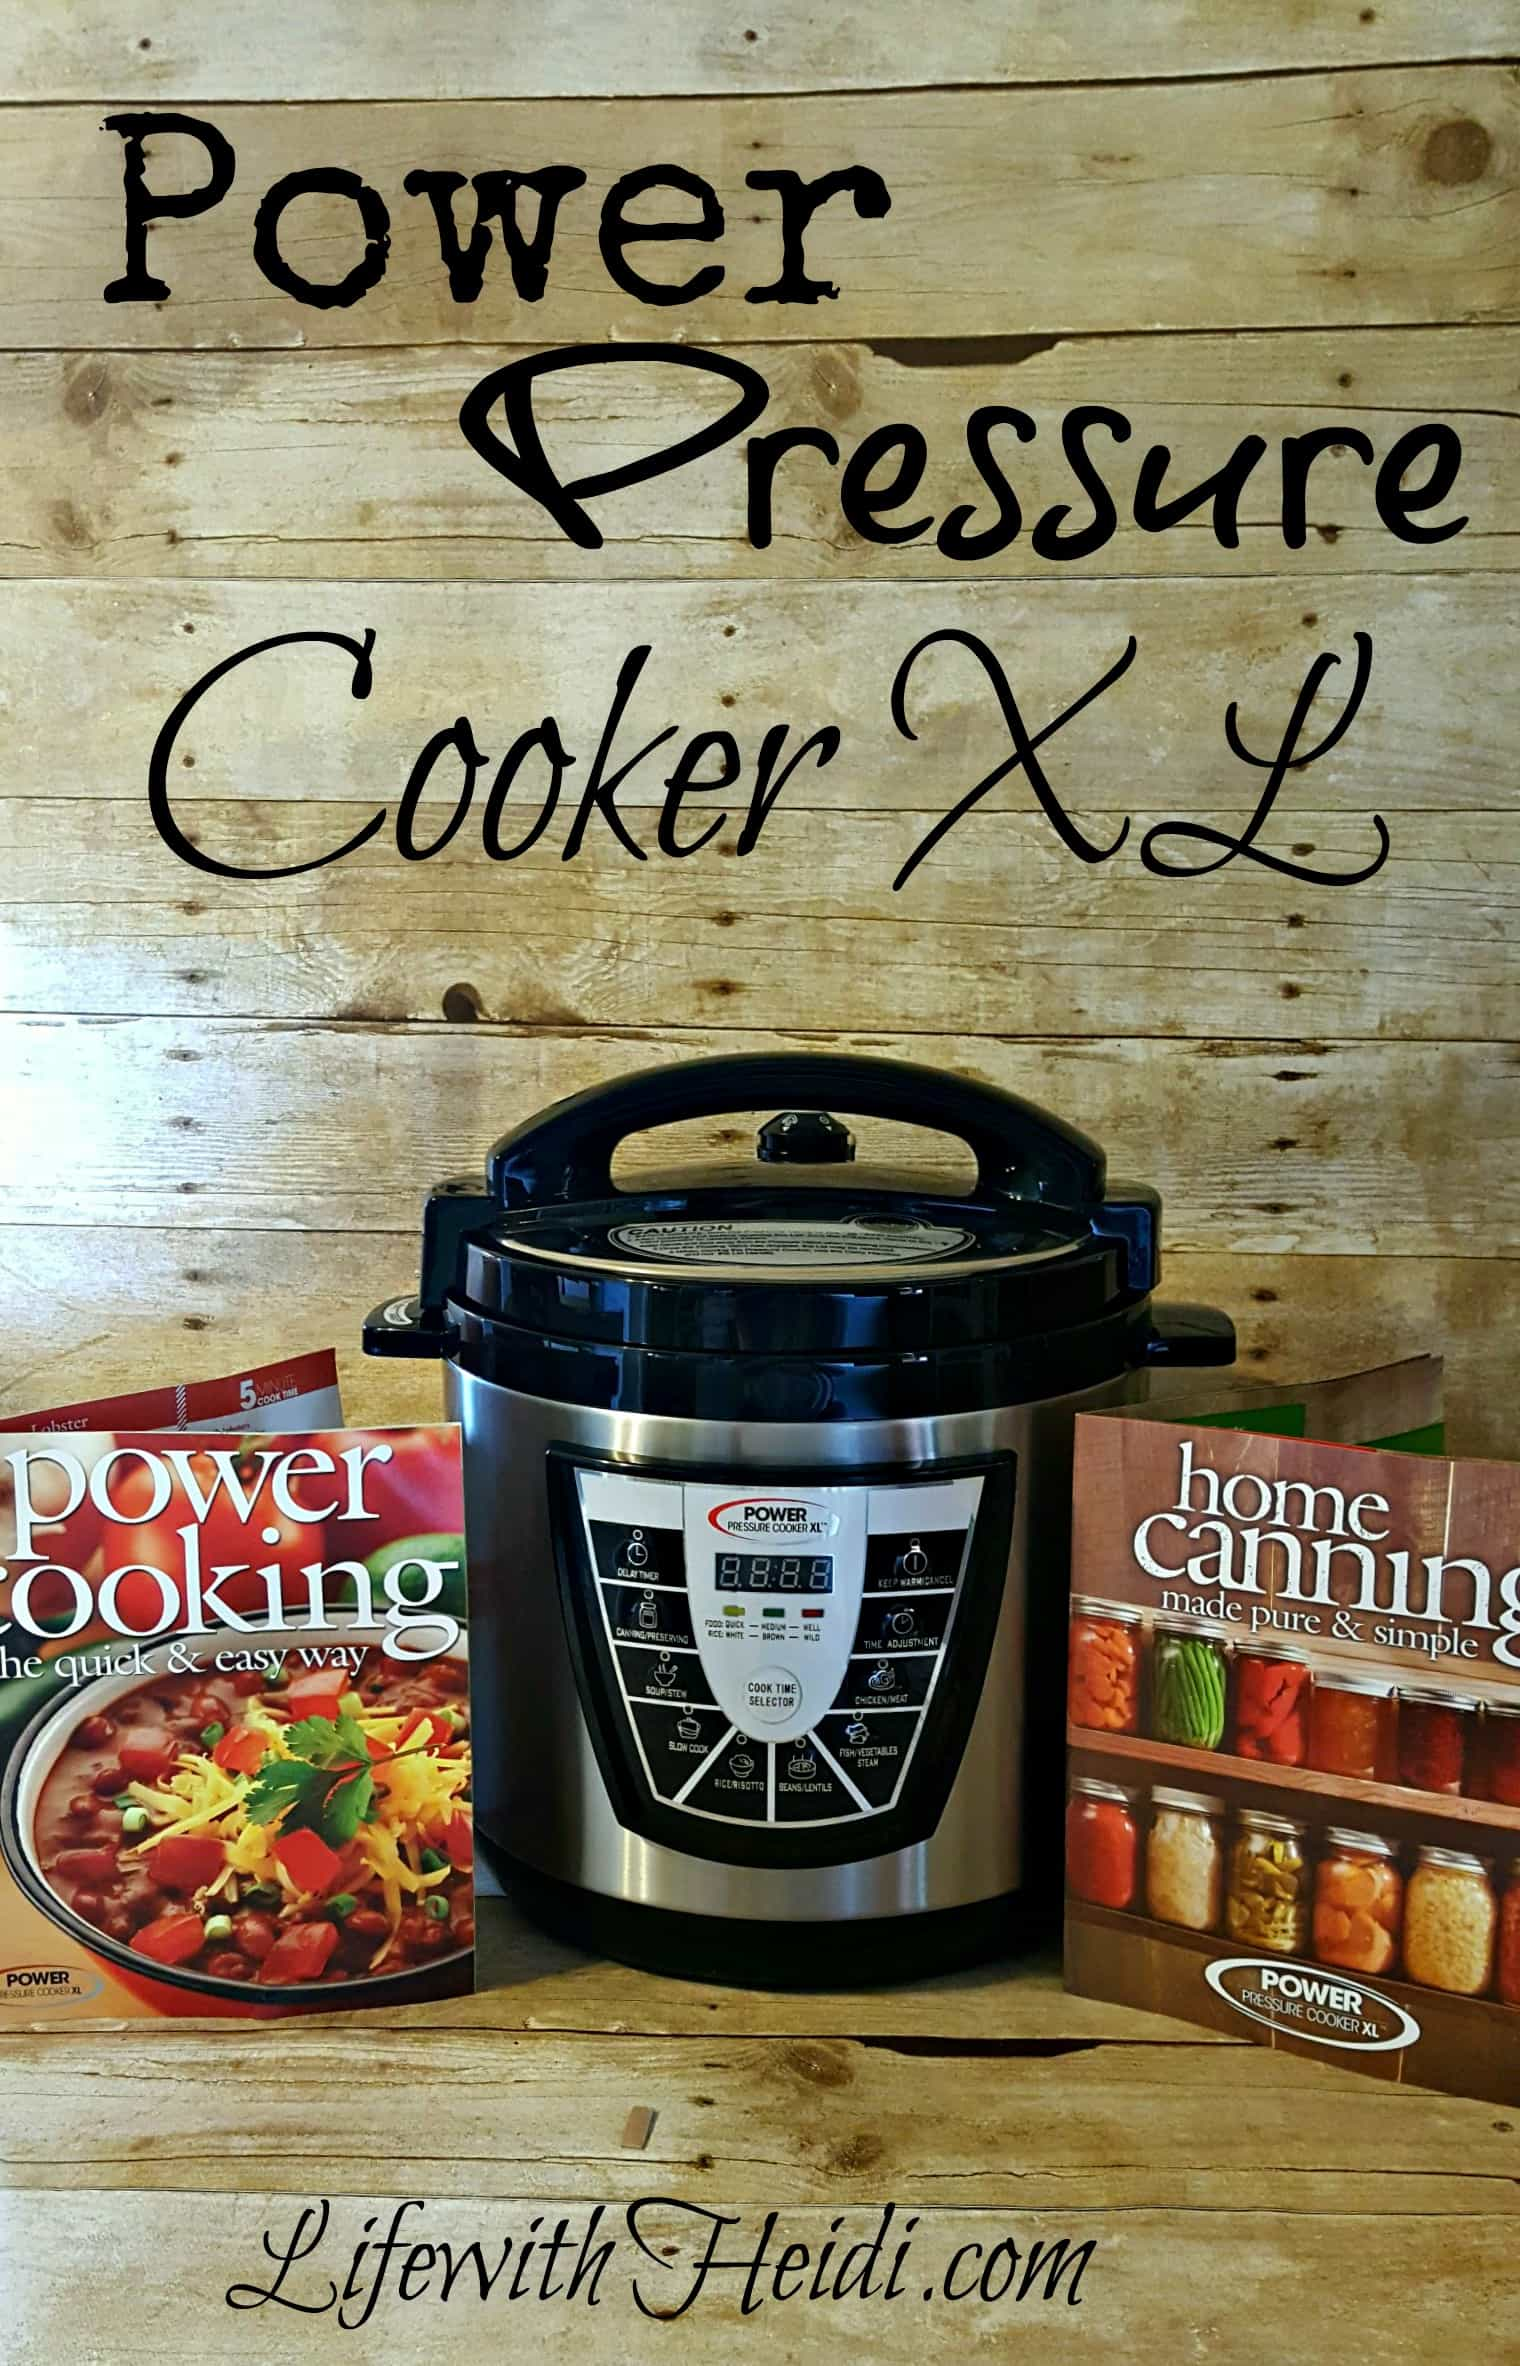 Power Pressure Cooker Xl Life With Heidi